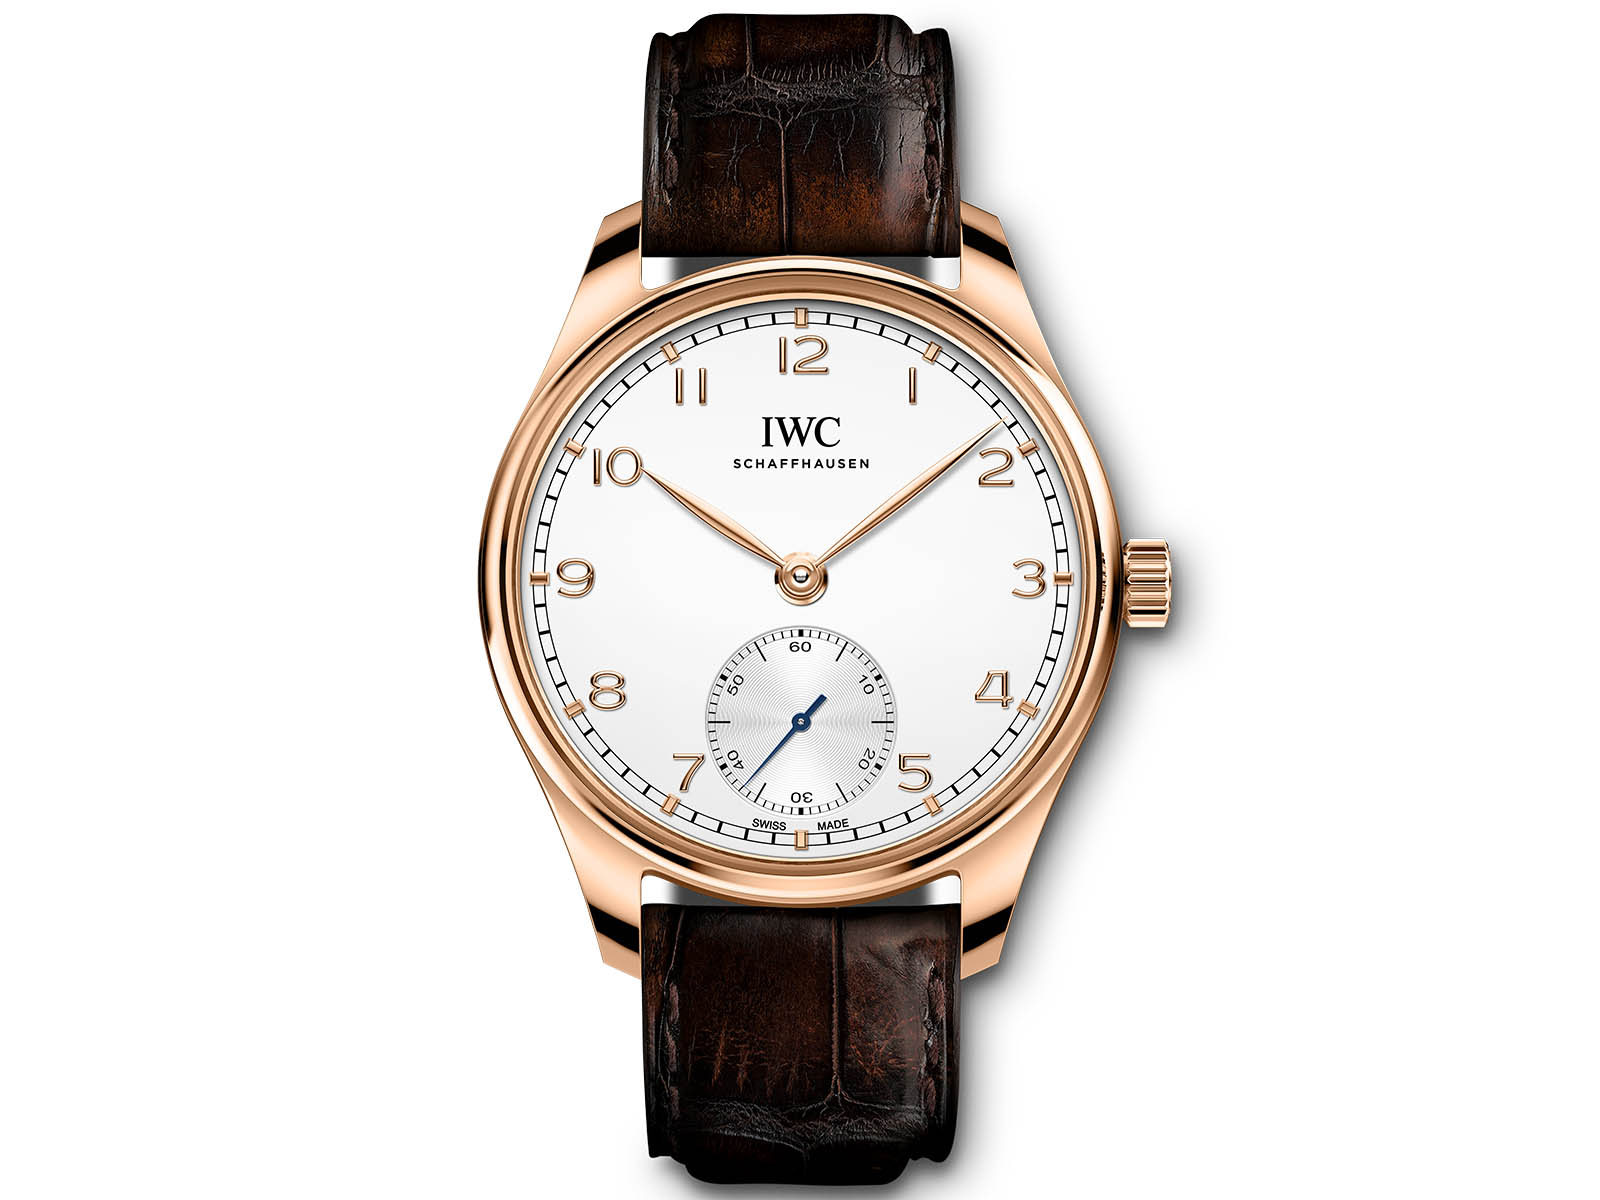 iw358306-iwc-schaffhausen-portugieser-automatic-watches-wonders-2020-1.jpg